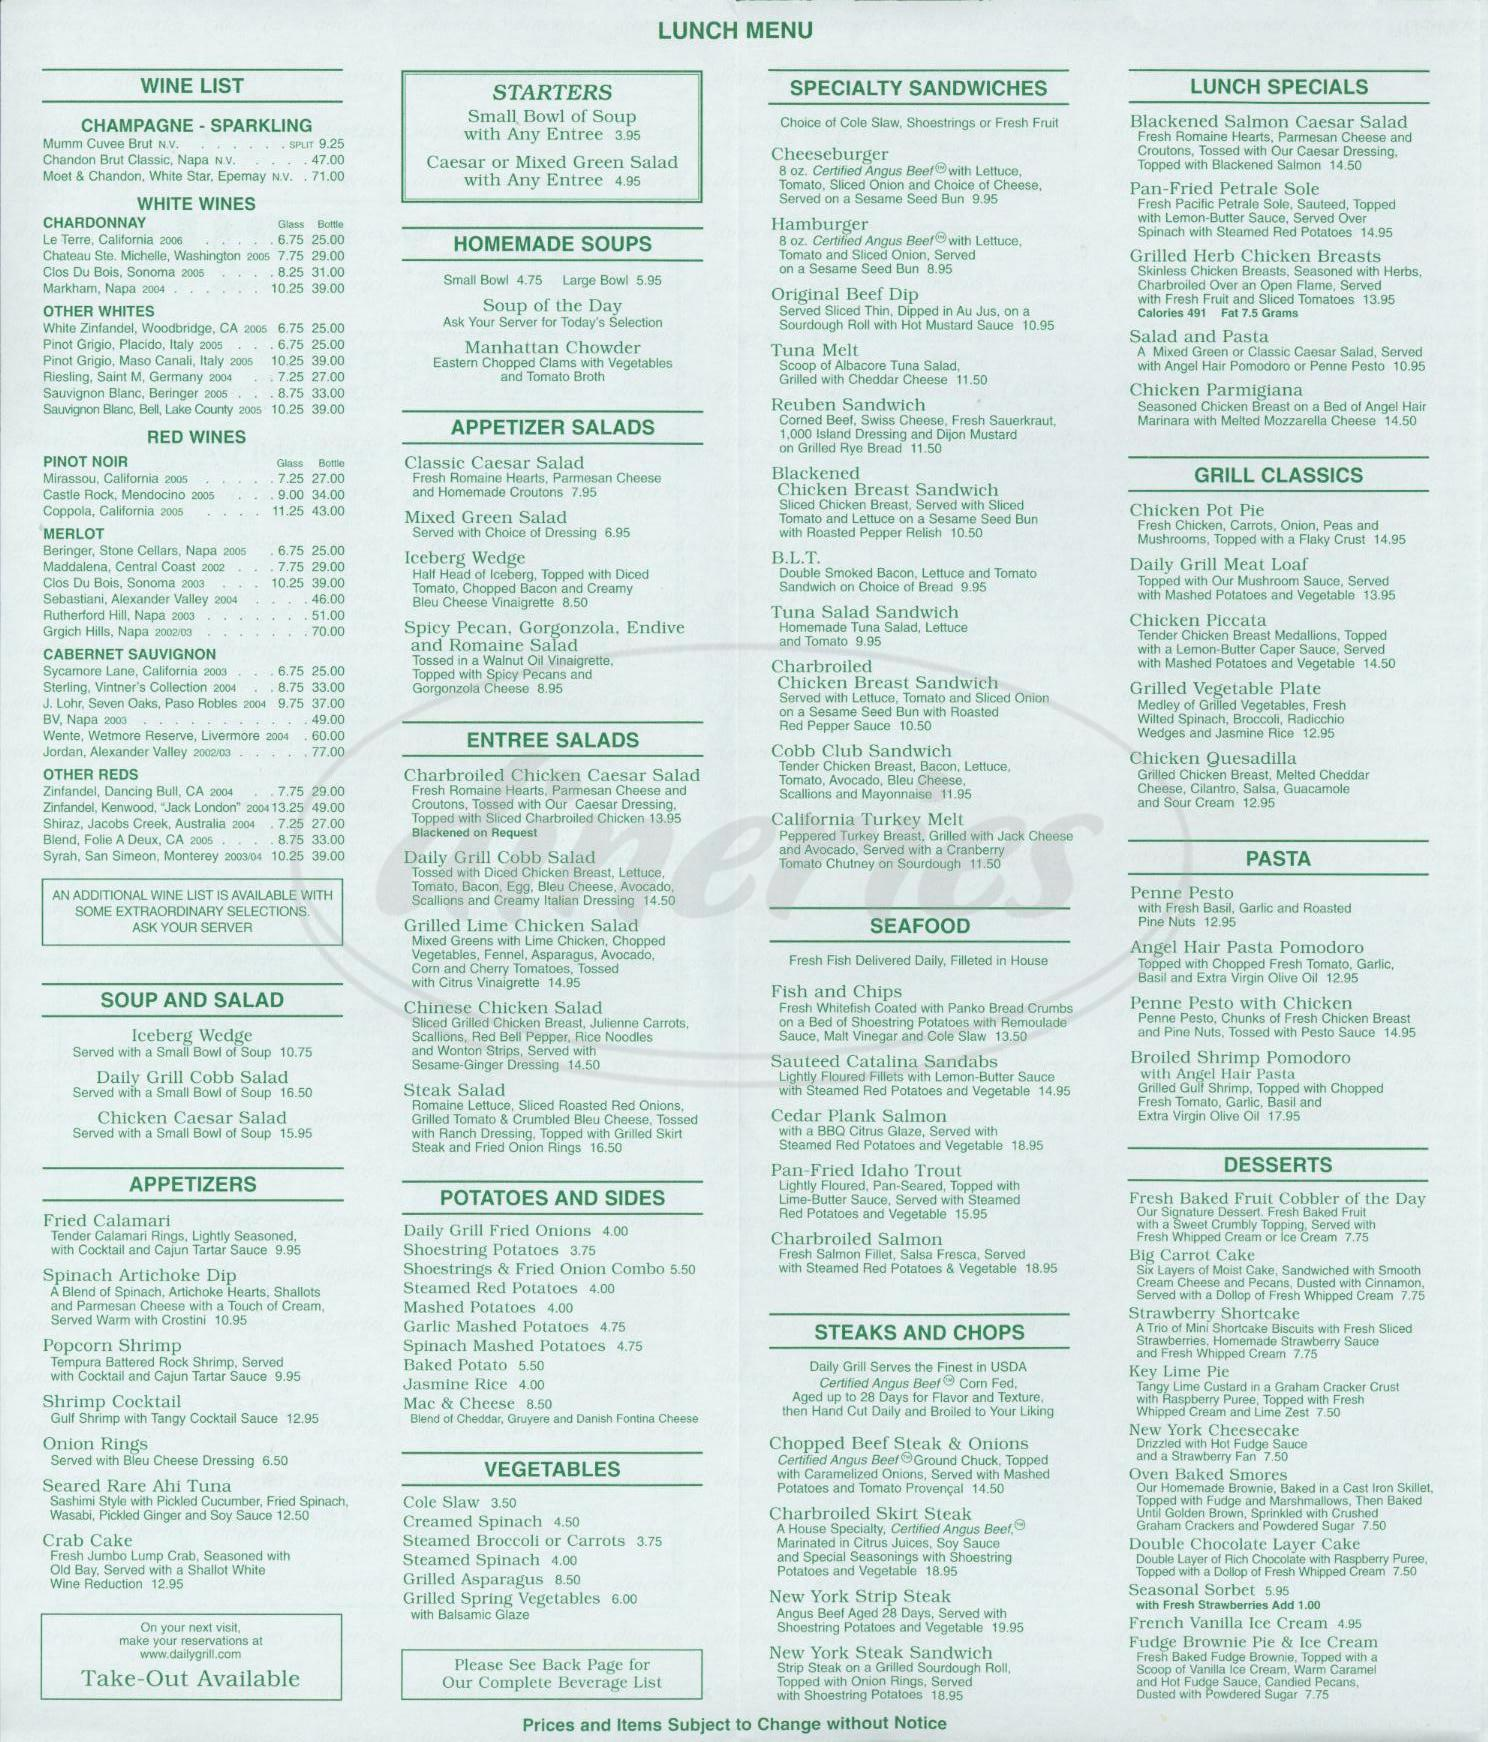 menu for Daily Grill